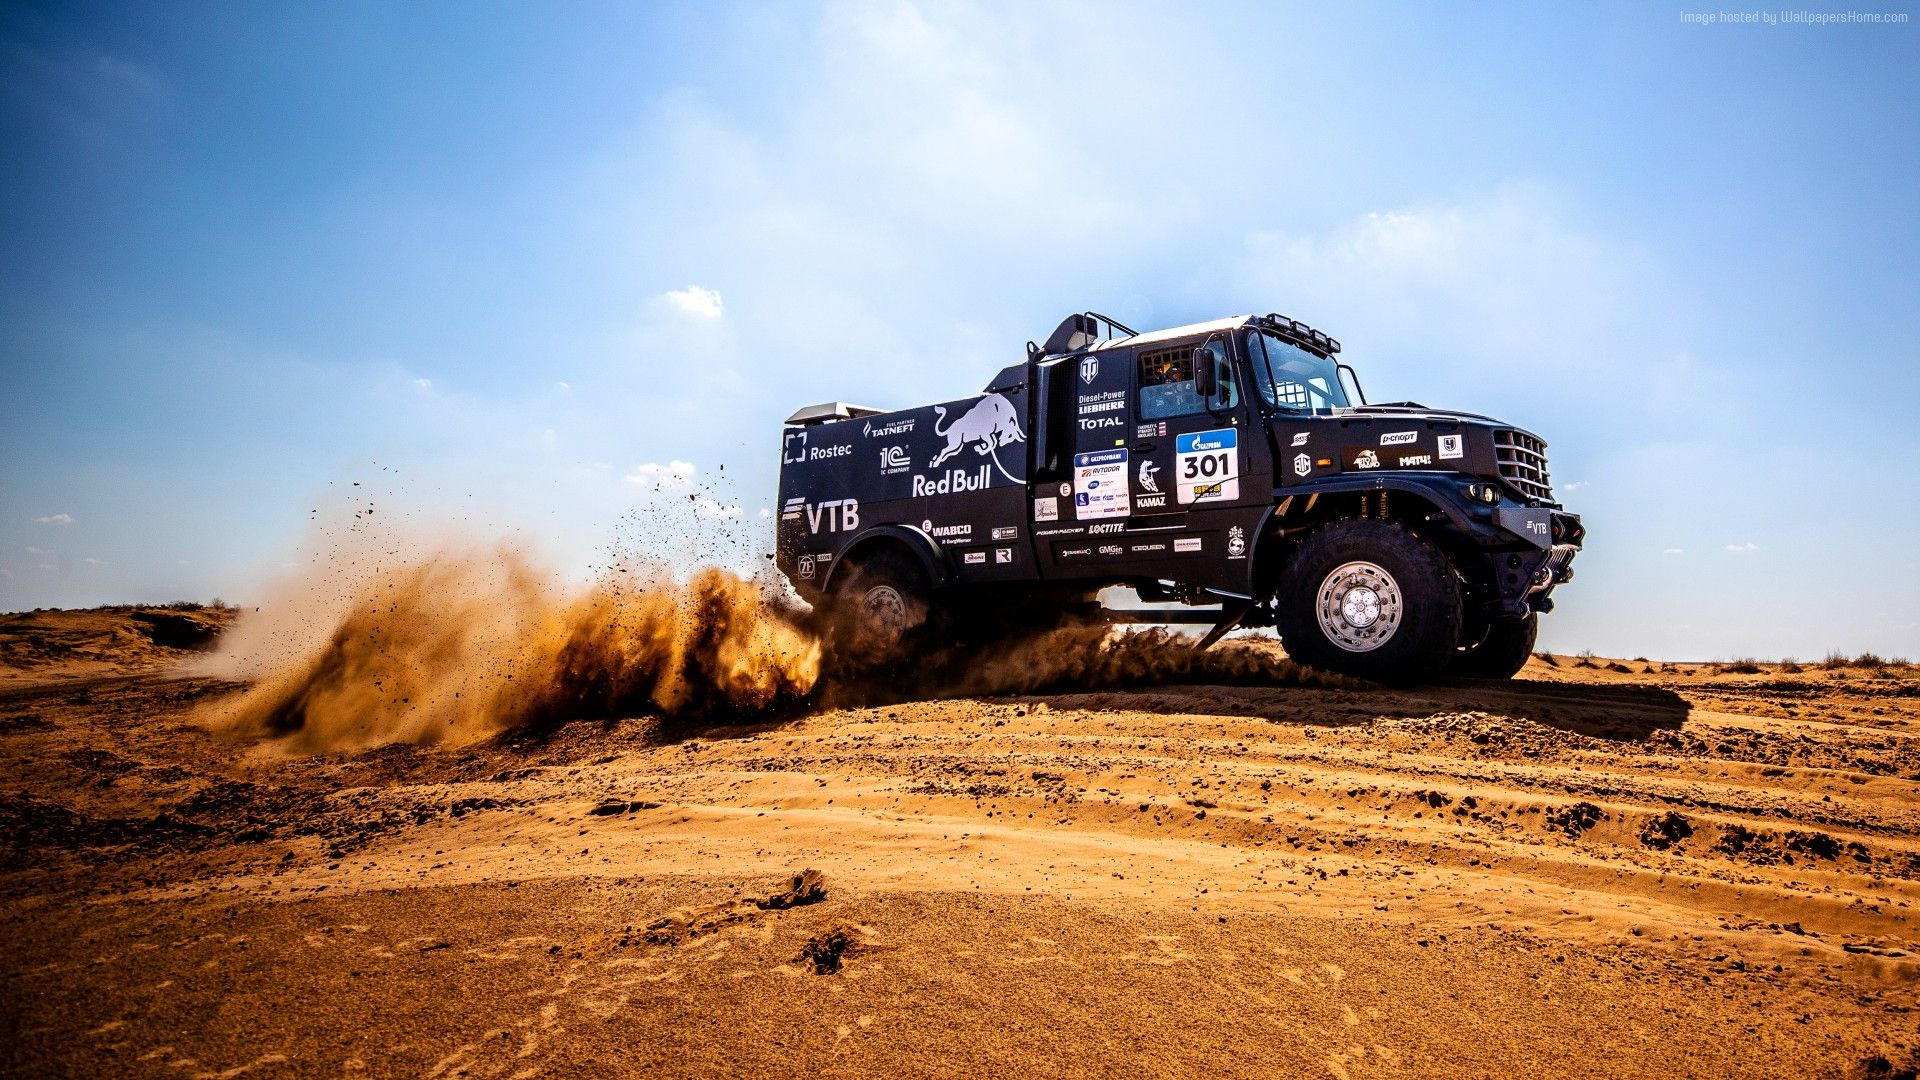 4k Wallpapers Hd Wallpapers Rally Car Racing Truck Rally Best Car Photo Motion Wallpapers